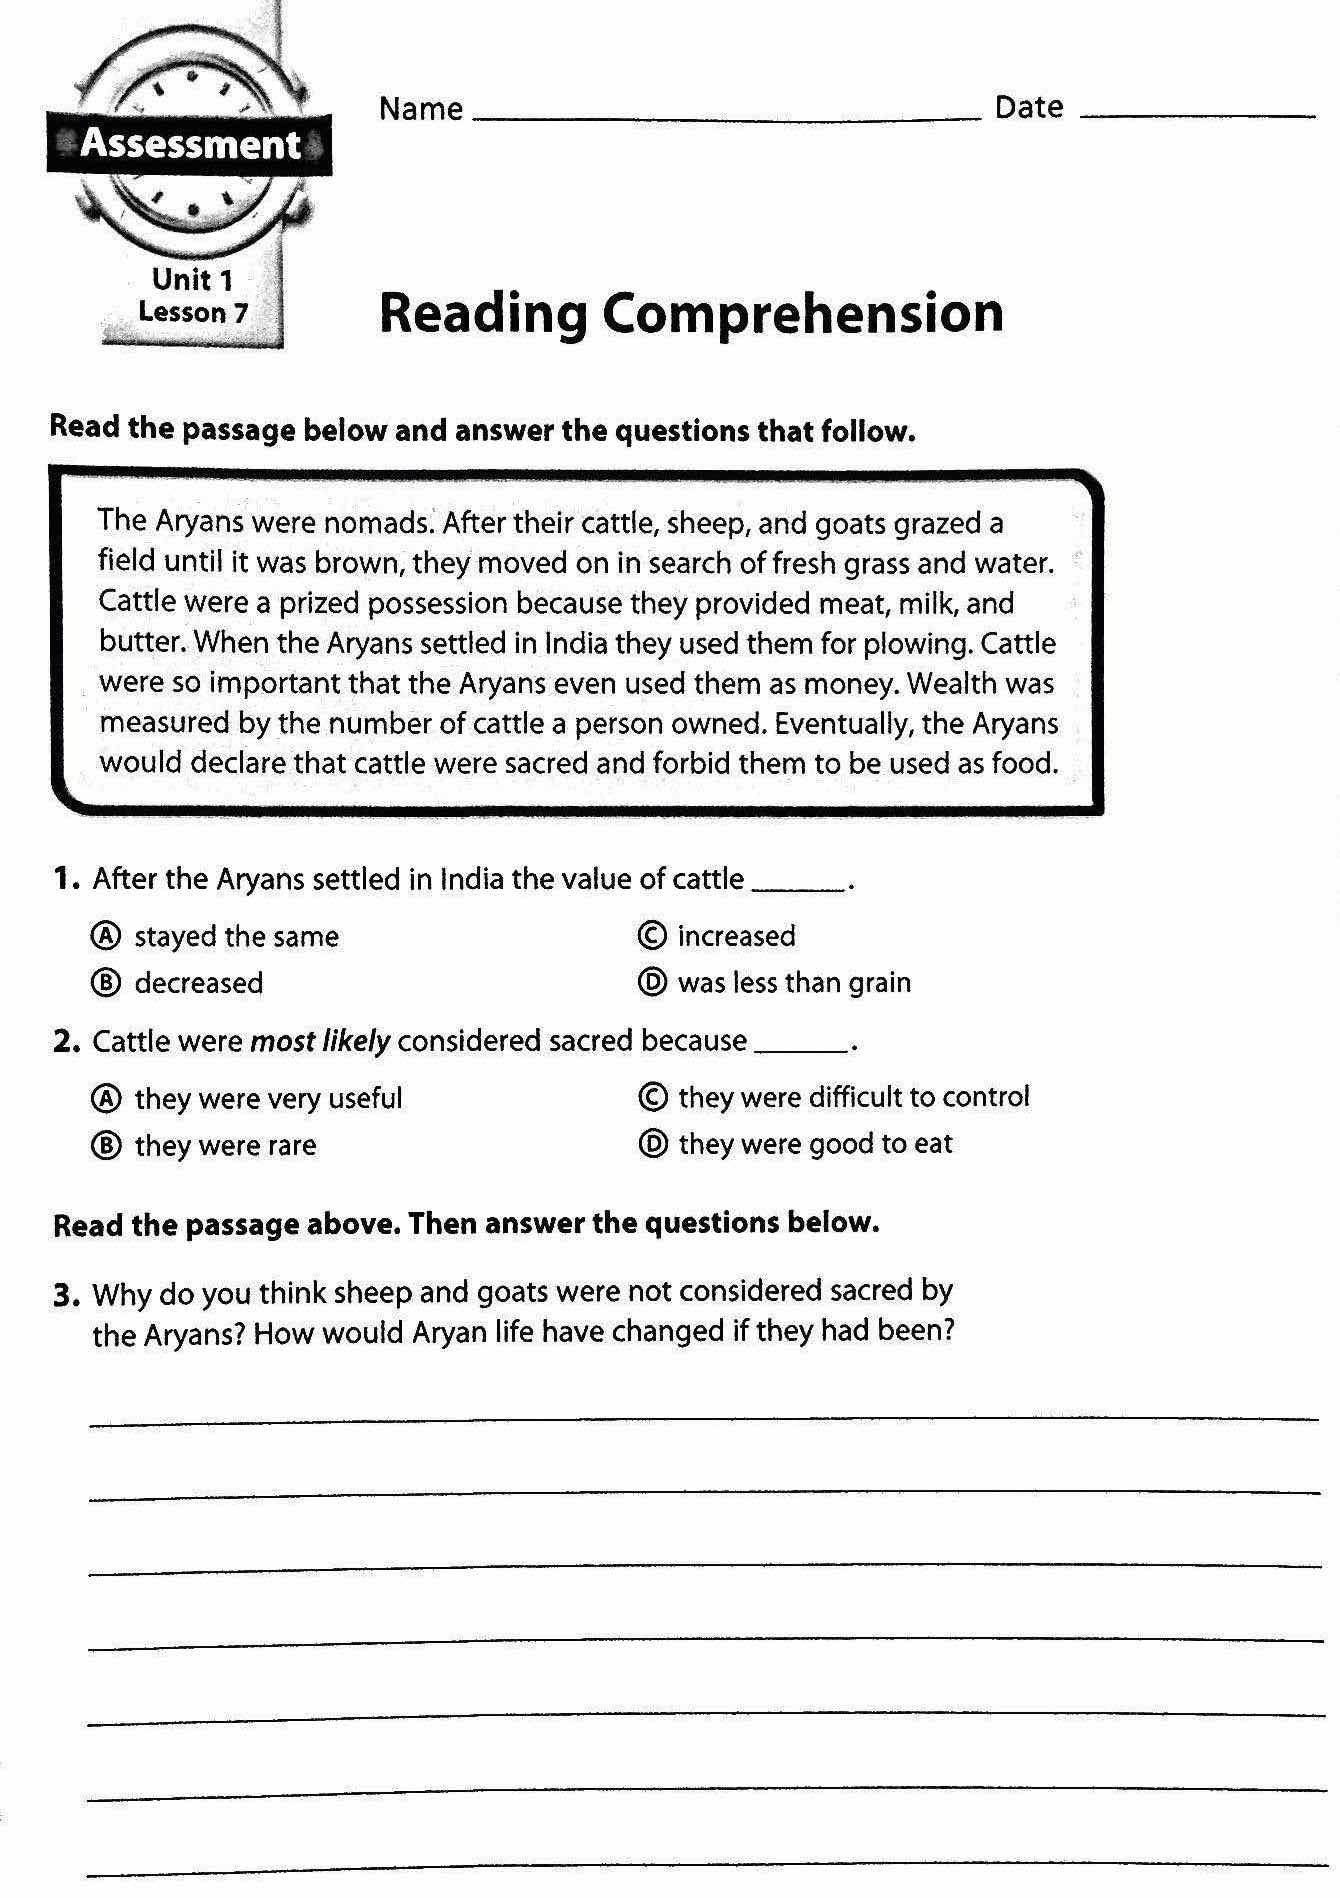 Chapter 4 Ancient India  Mr Proehl's Social Studies Class Together With Mesopotamia Reading Comprehension Worksheets